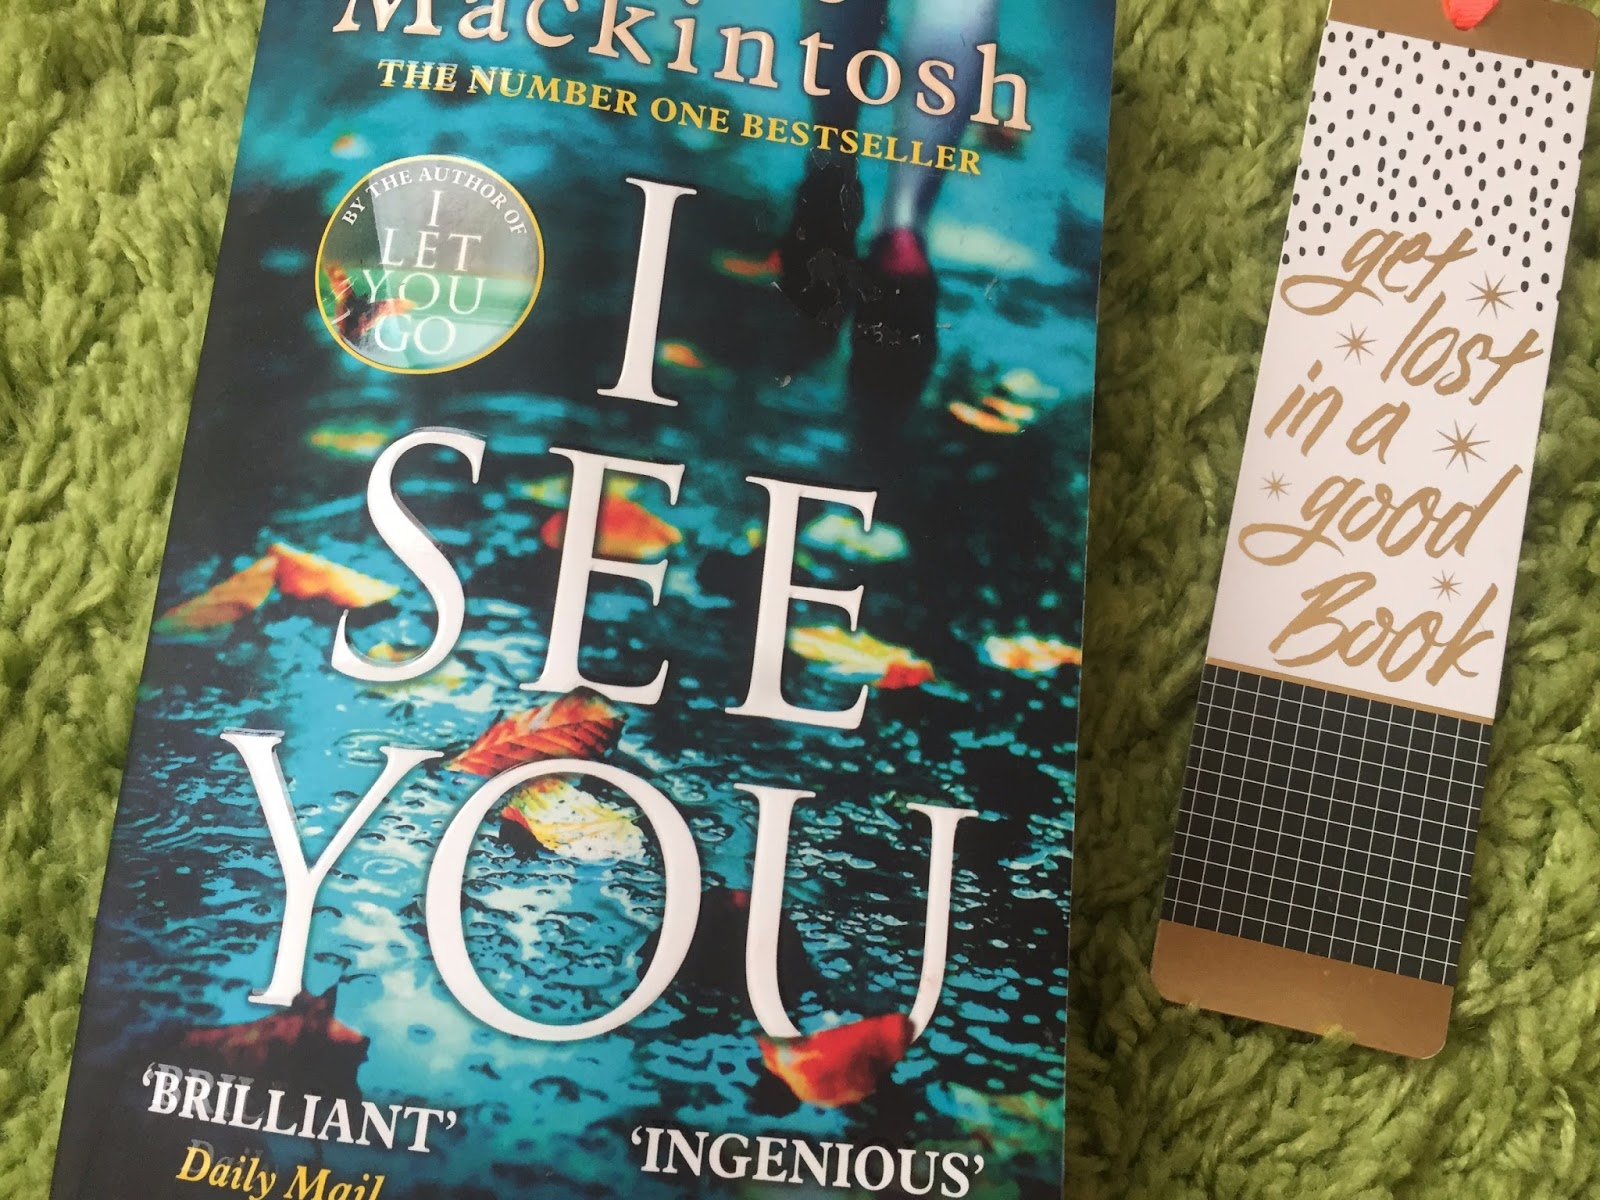 Formidable Joy | Formidable Joy Blog | Book Review | Books | I See You | Claire Mackintosh | Thriller | Mystery